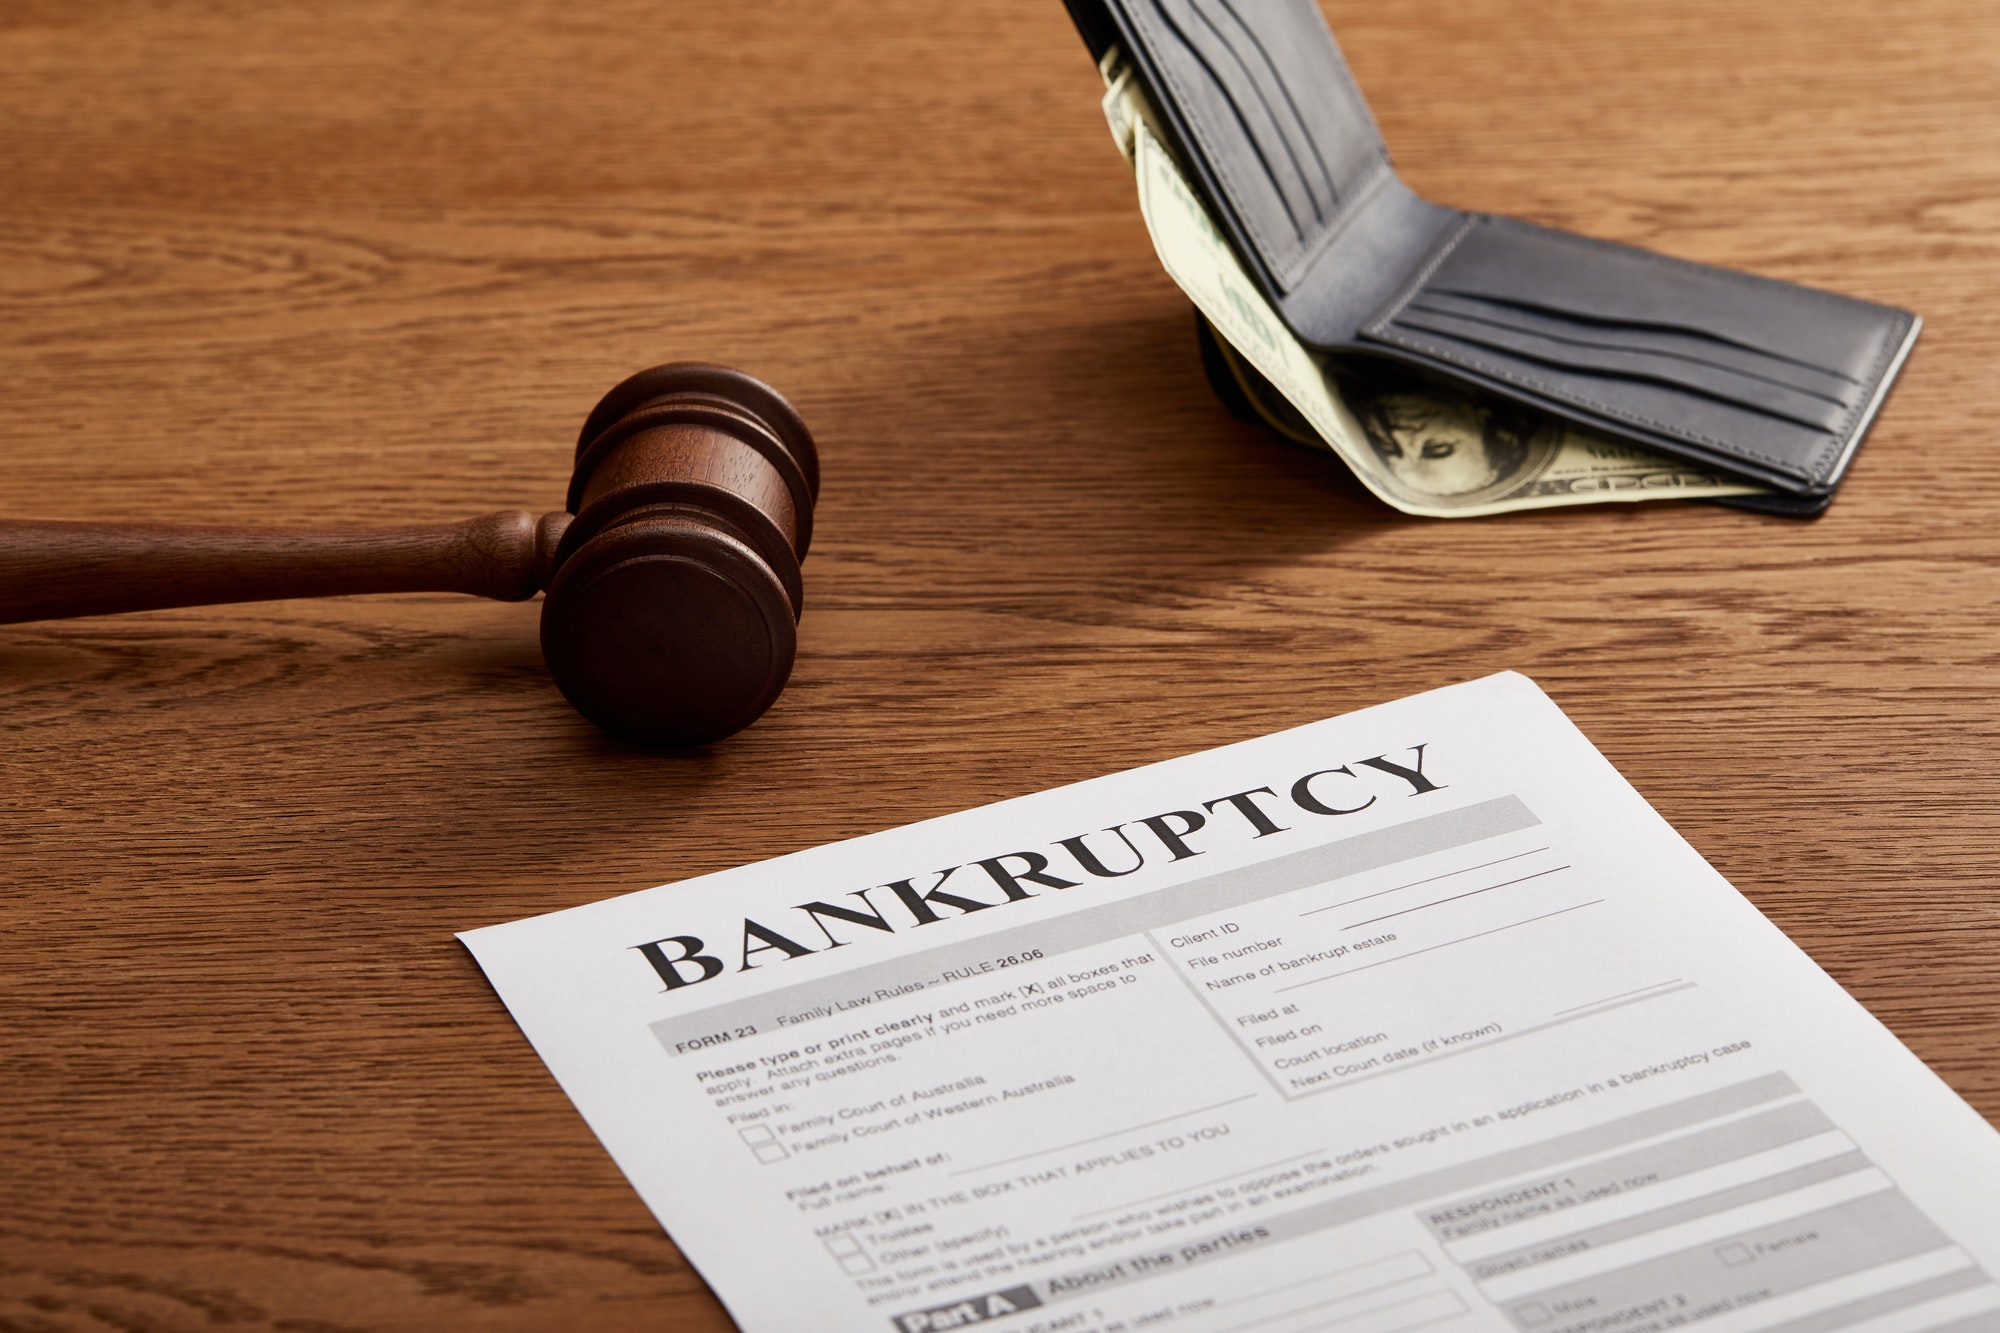 bankruptcy form with wooden gavel, dollar banknote and wallet on brown wooden table